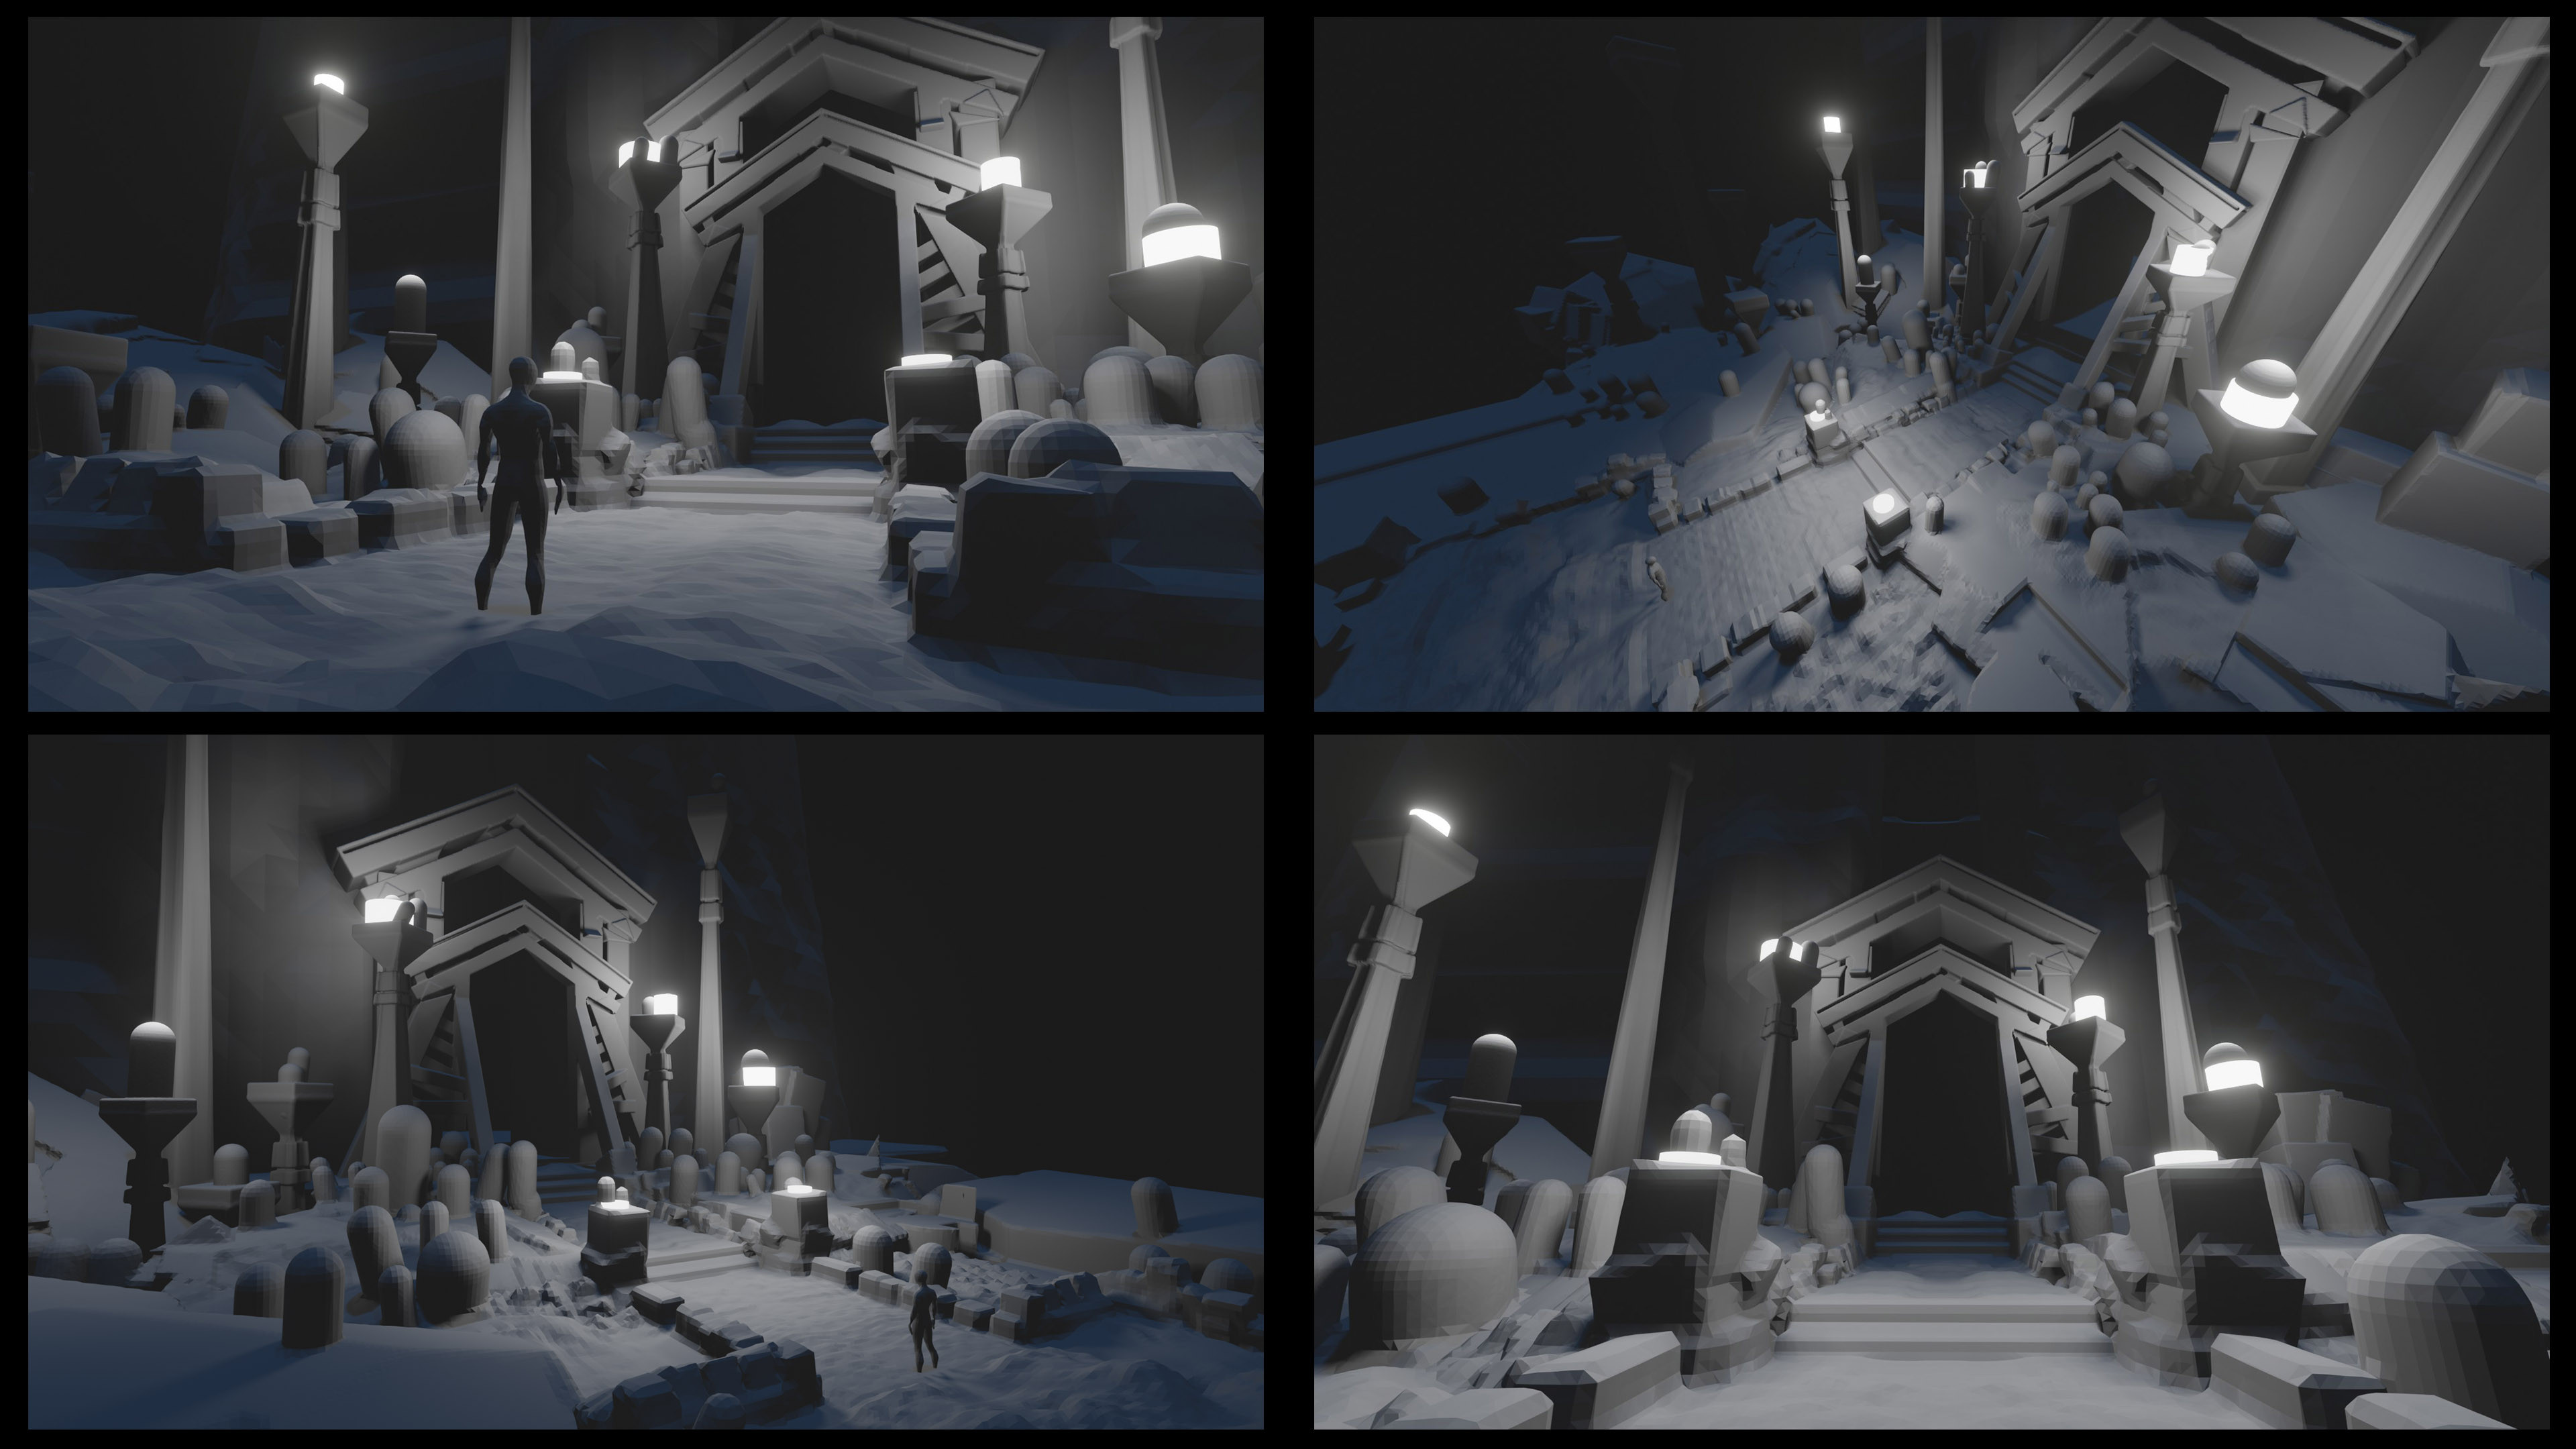 Blender was used to explore lighting and shot options